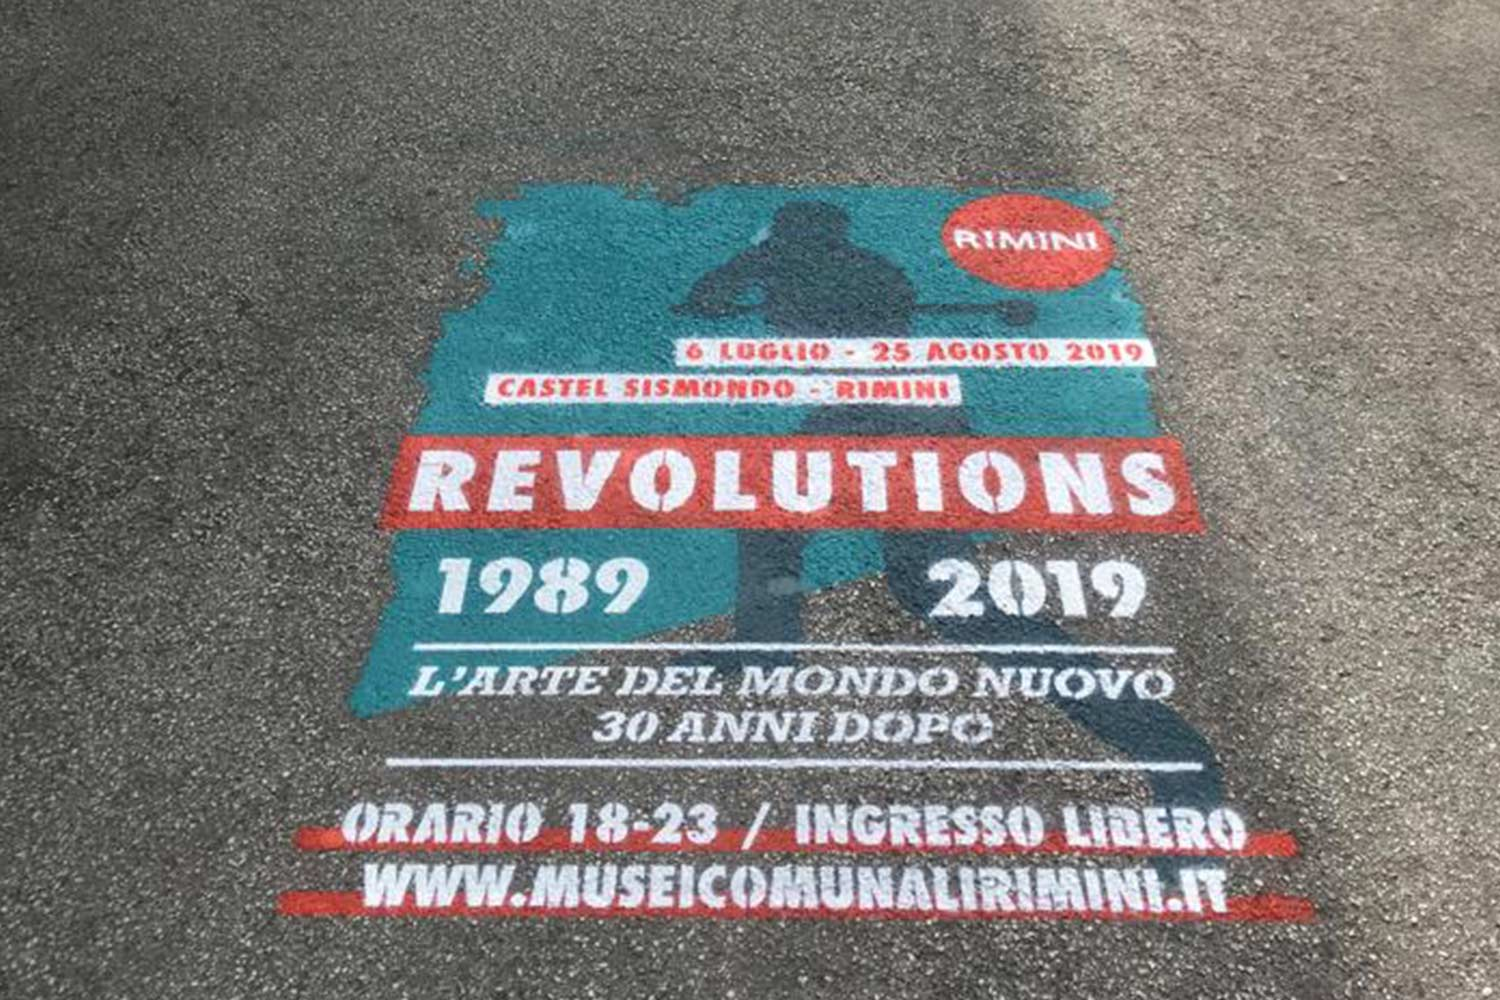 street marketing comune di rimini revolutions